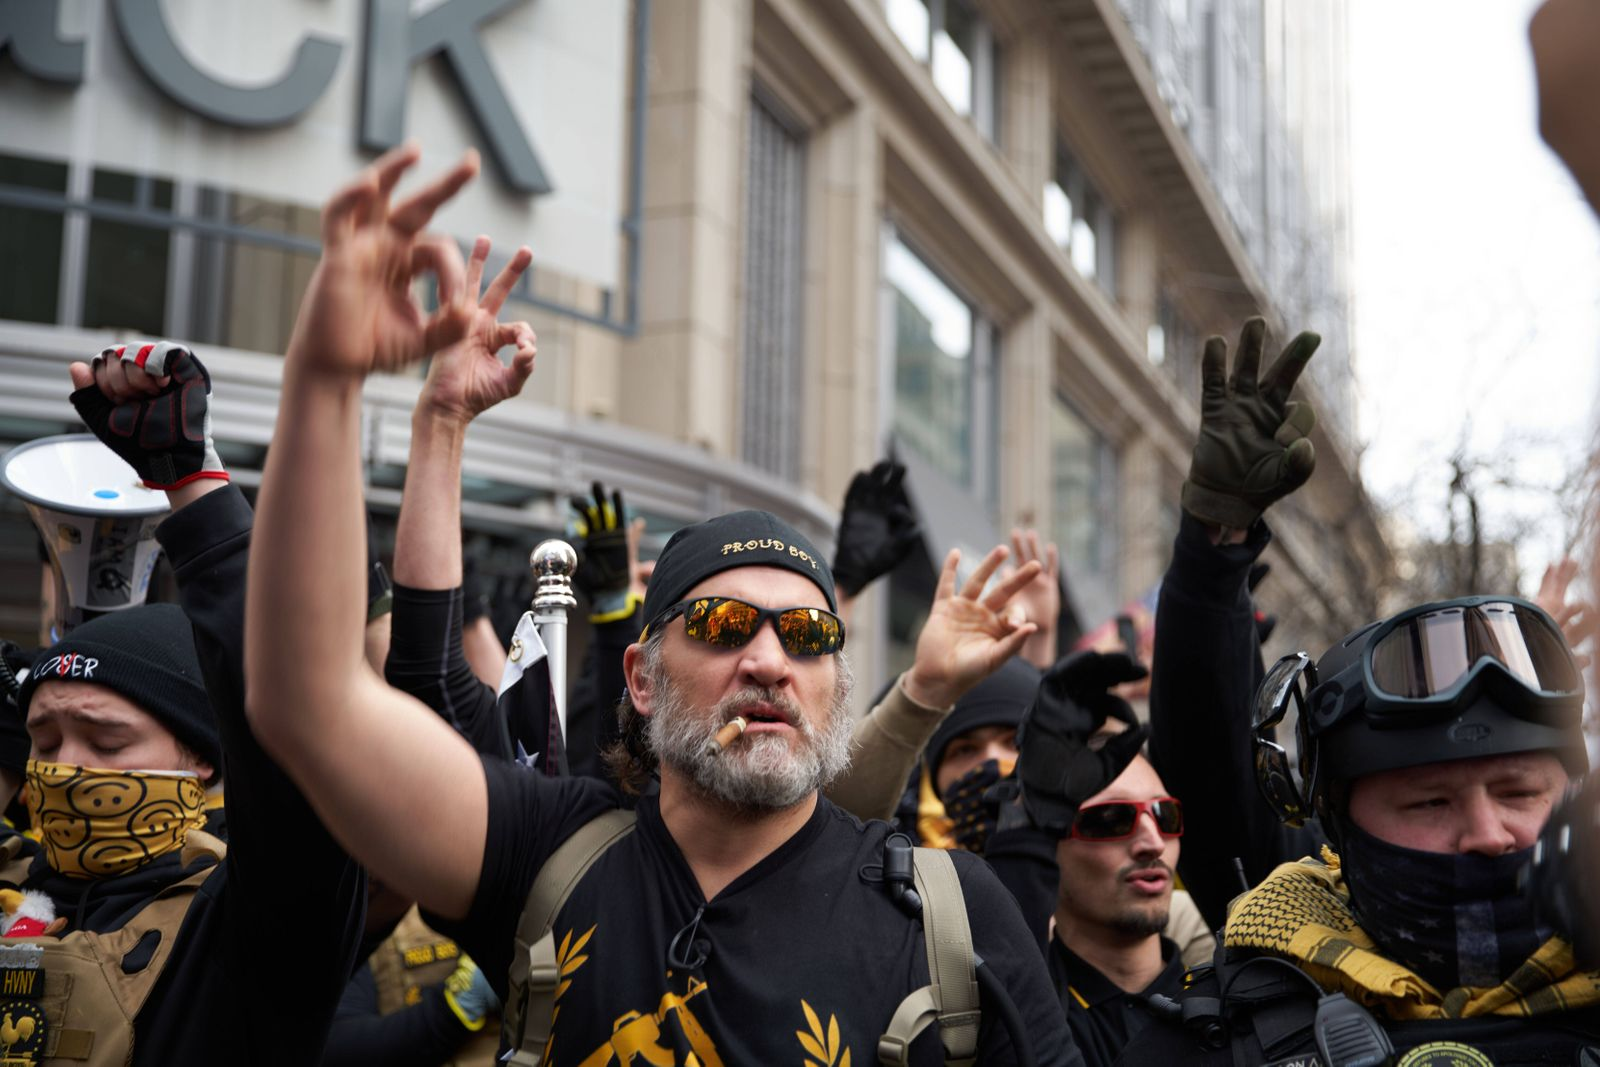 December 12, 2020, Washington Dc, U.S.A: The Proud Boys clashed with left-side protestors in Washington DC during a pro